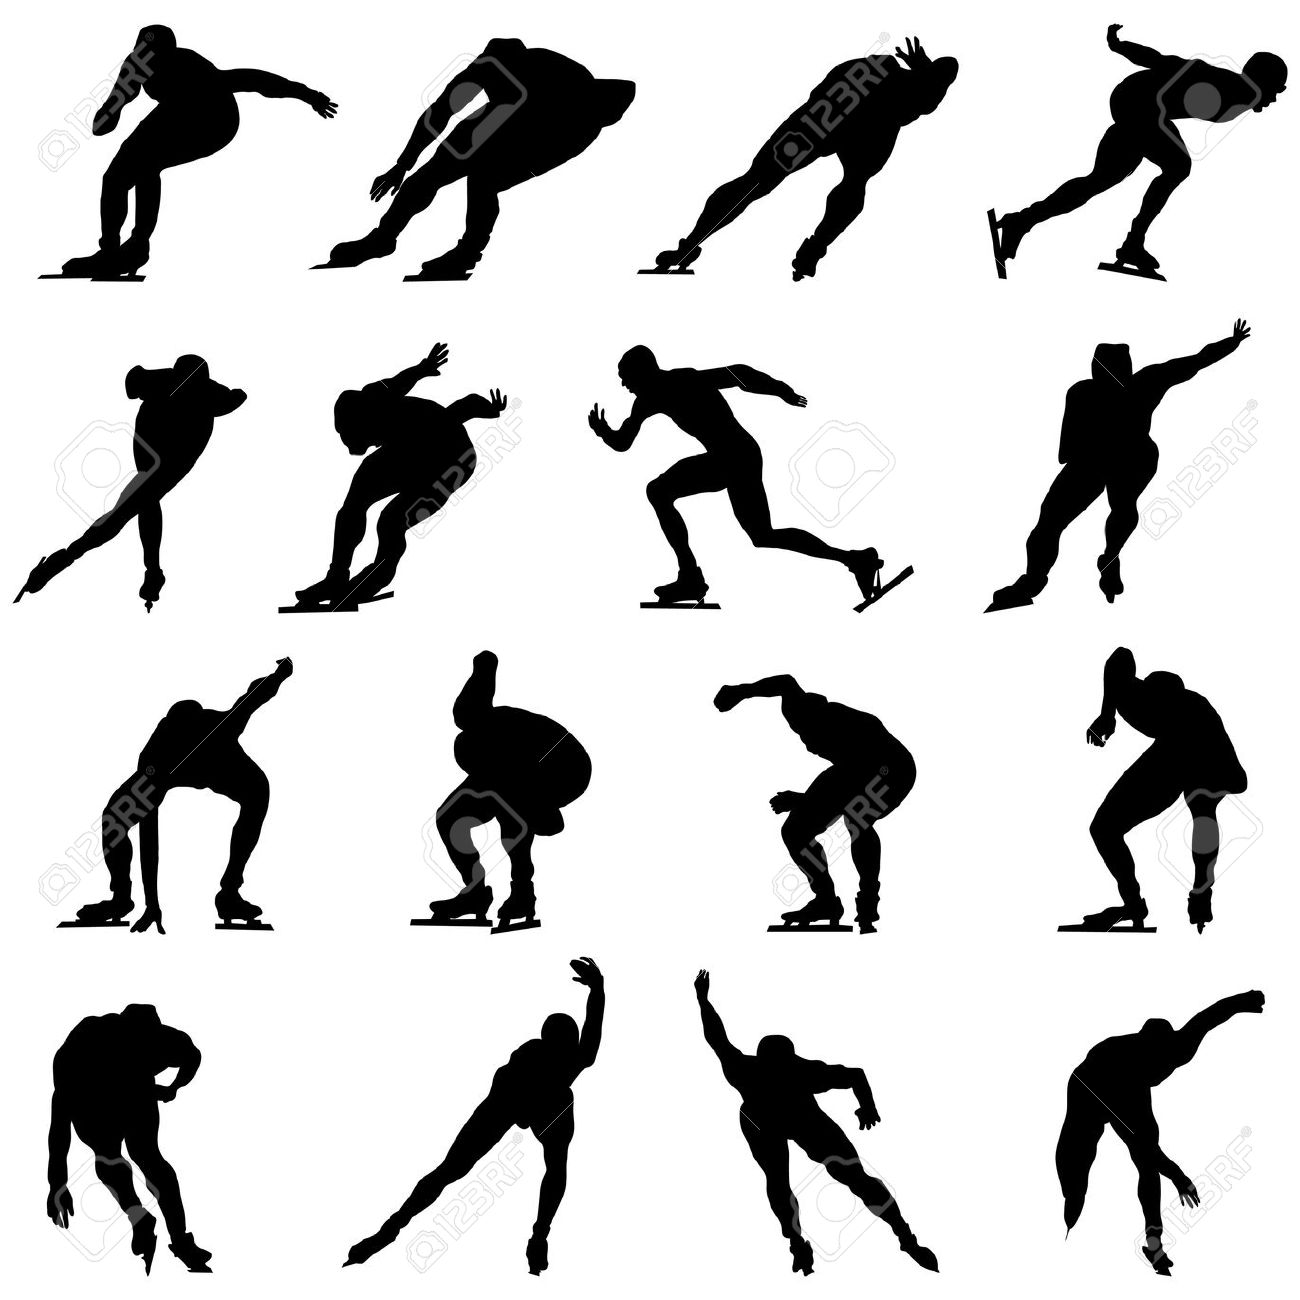 Inline speed skating clipart clipart transparent download Skating Man Silhouette Set For Design Use Royalty Free Cliparts ... clipart transparent download